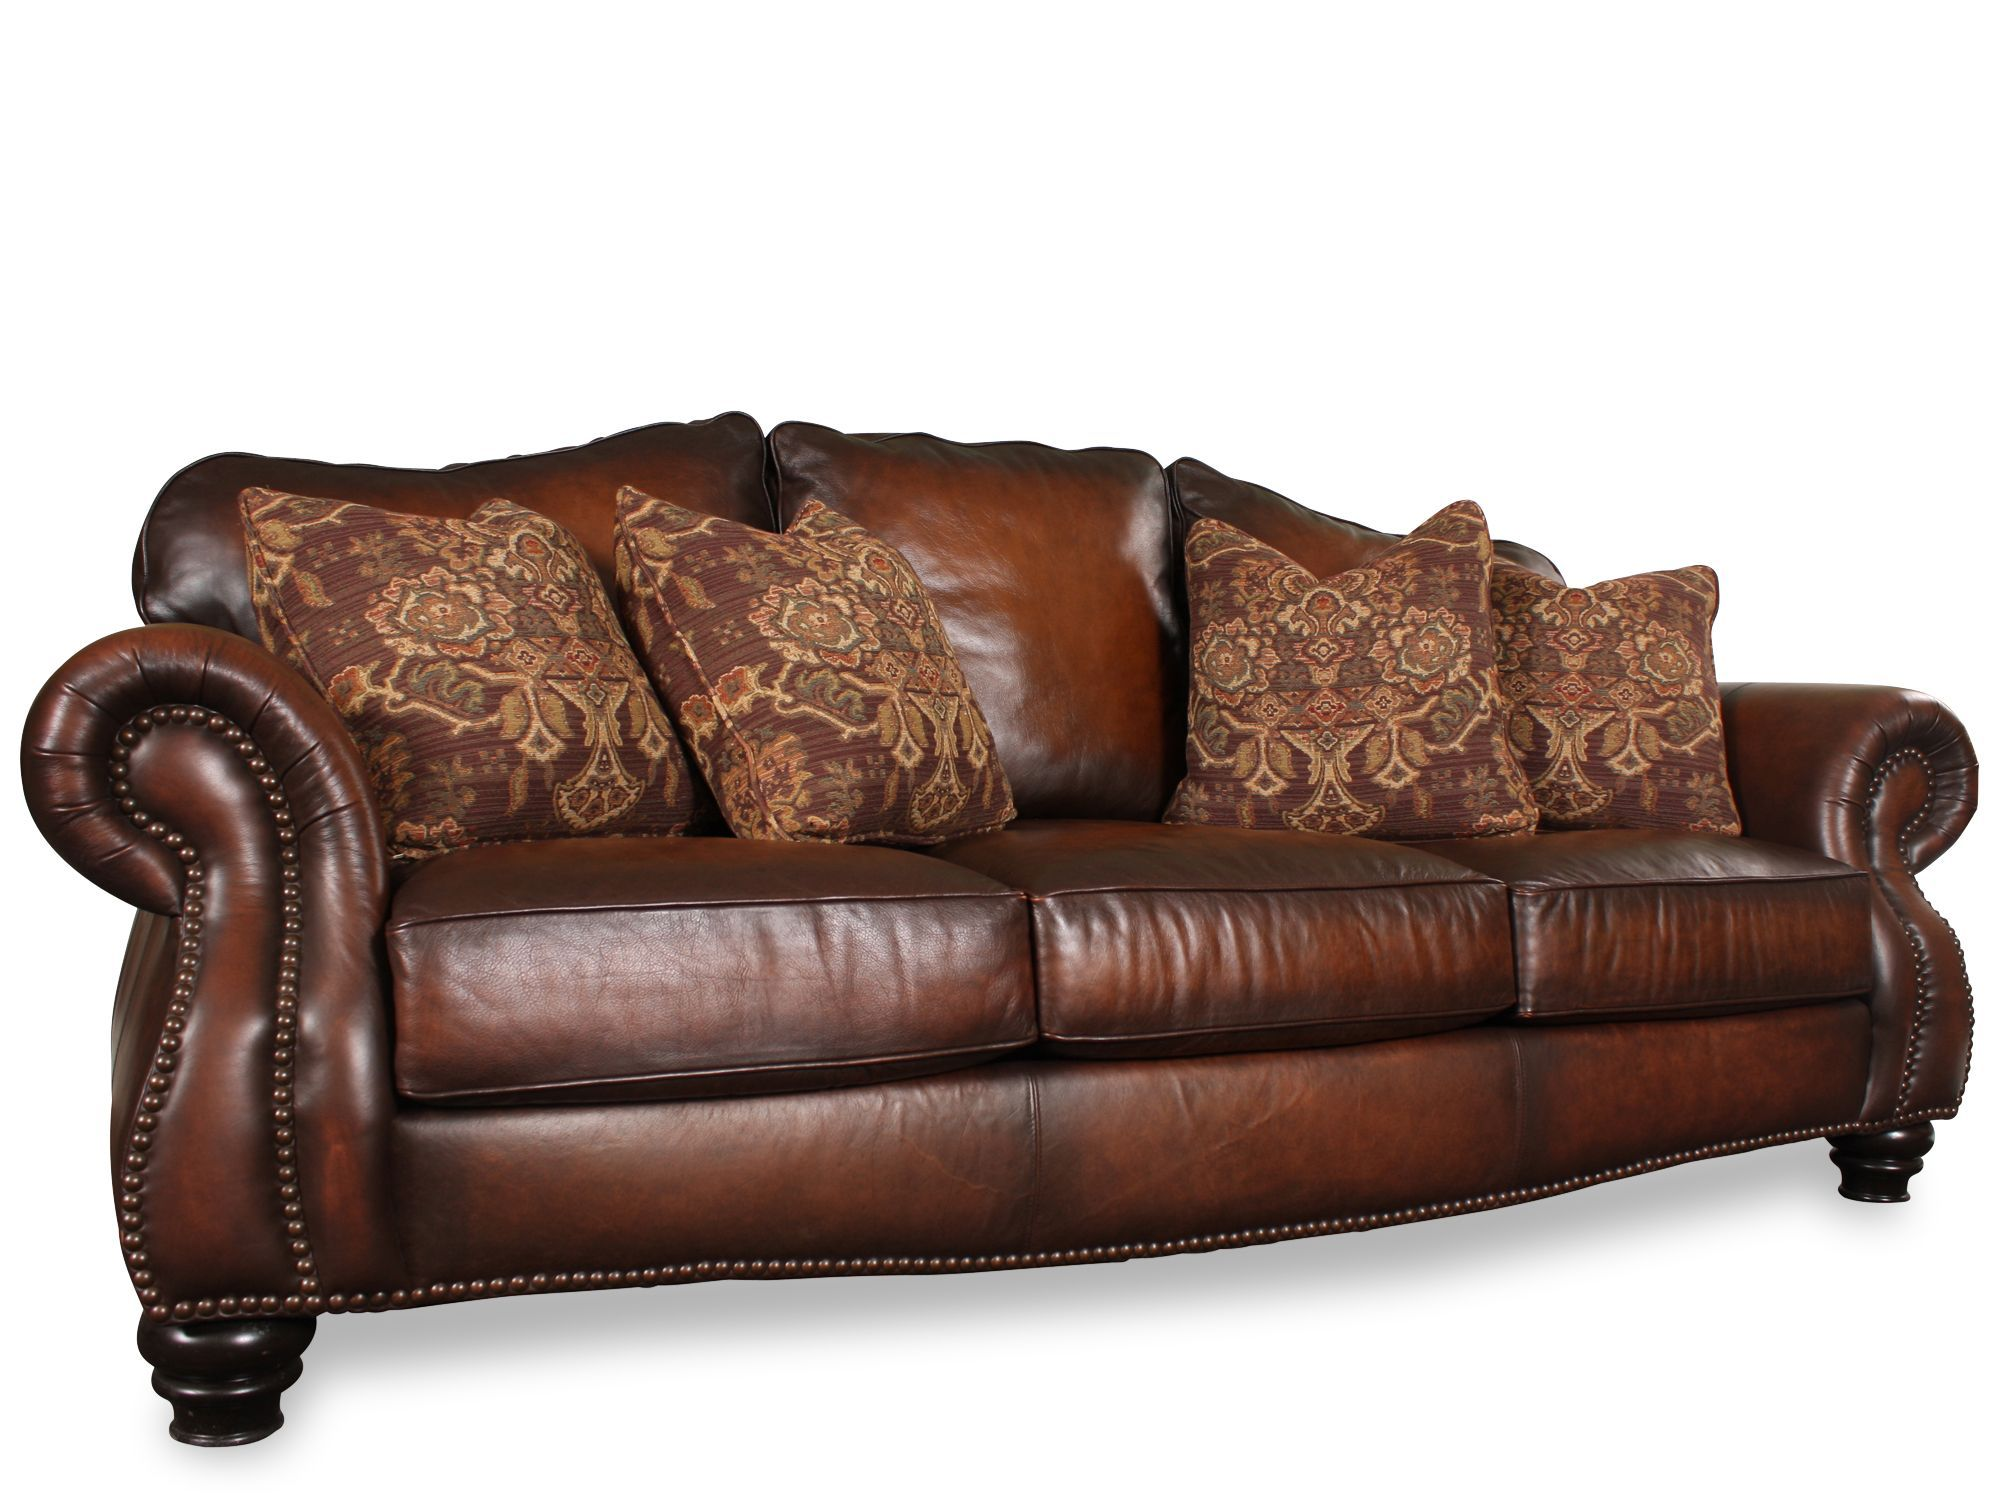 Bernhardt Chad Leather Sofa For The Home Sofa Home